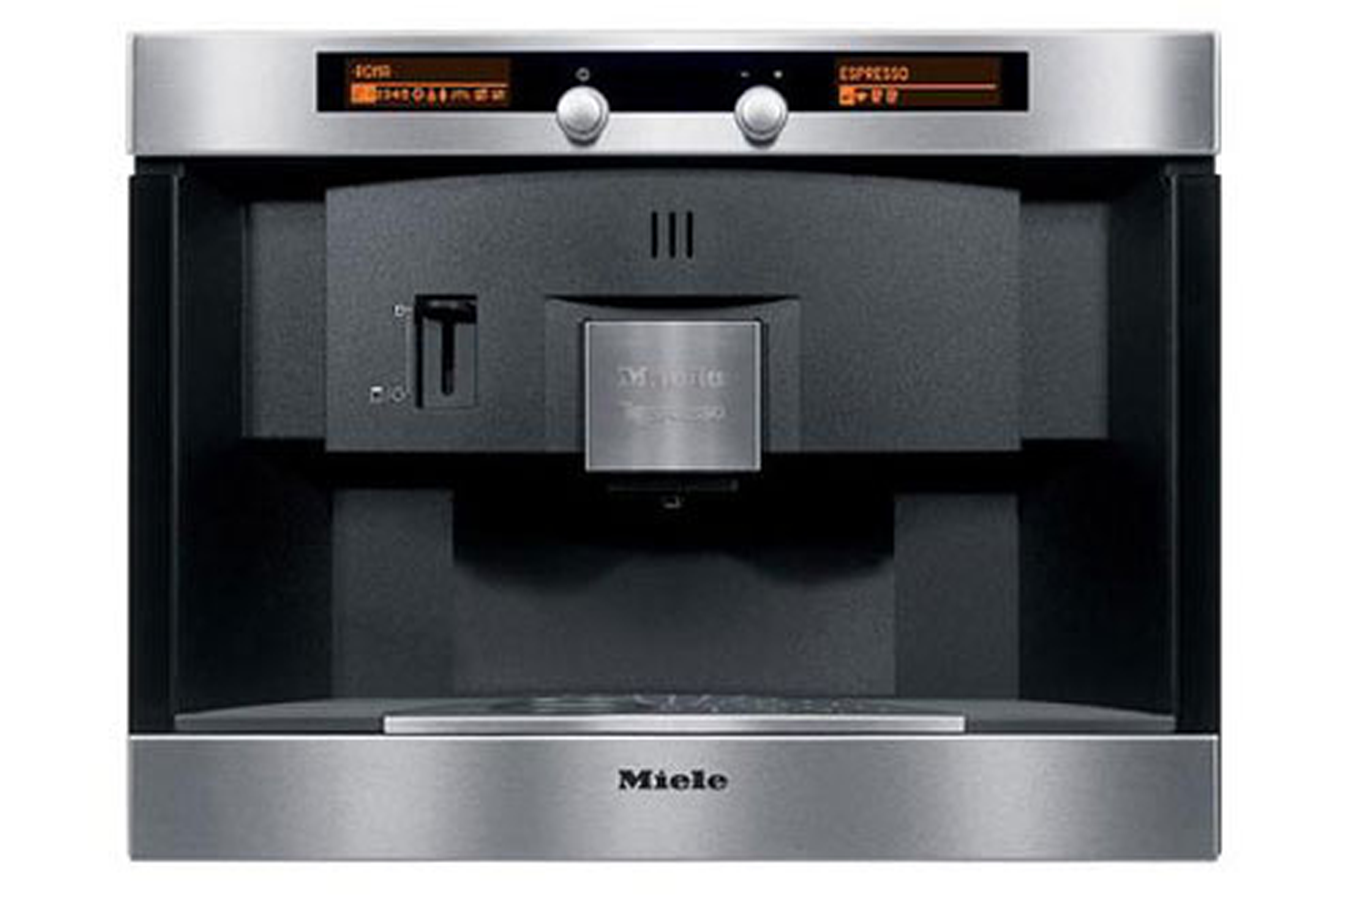 Machine caf encastrable miele cva 2650 inox cva 2650 1948660 darty - Auchan machine a cafe nespresso ...